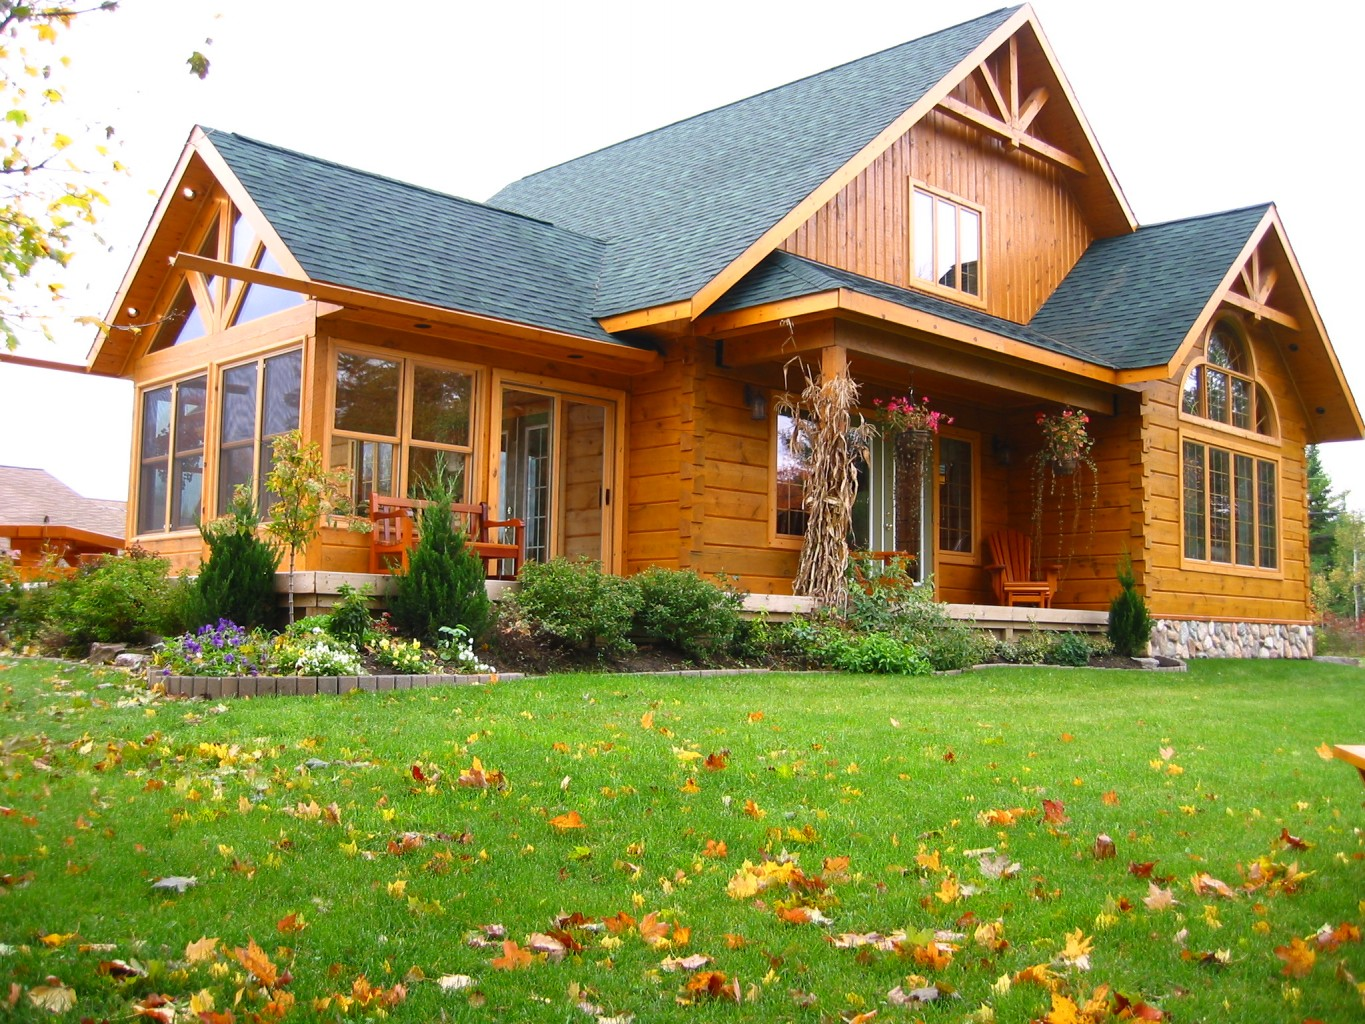 View our model open 7 days a week holiday hours 10 4 for Log home sunrooms